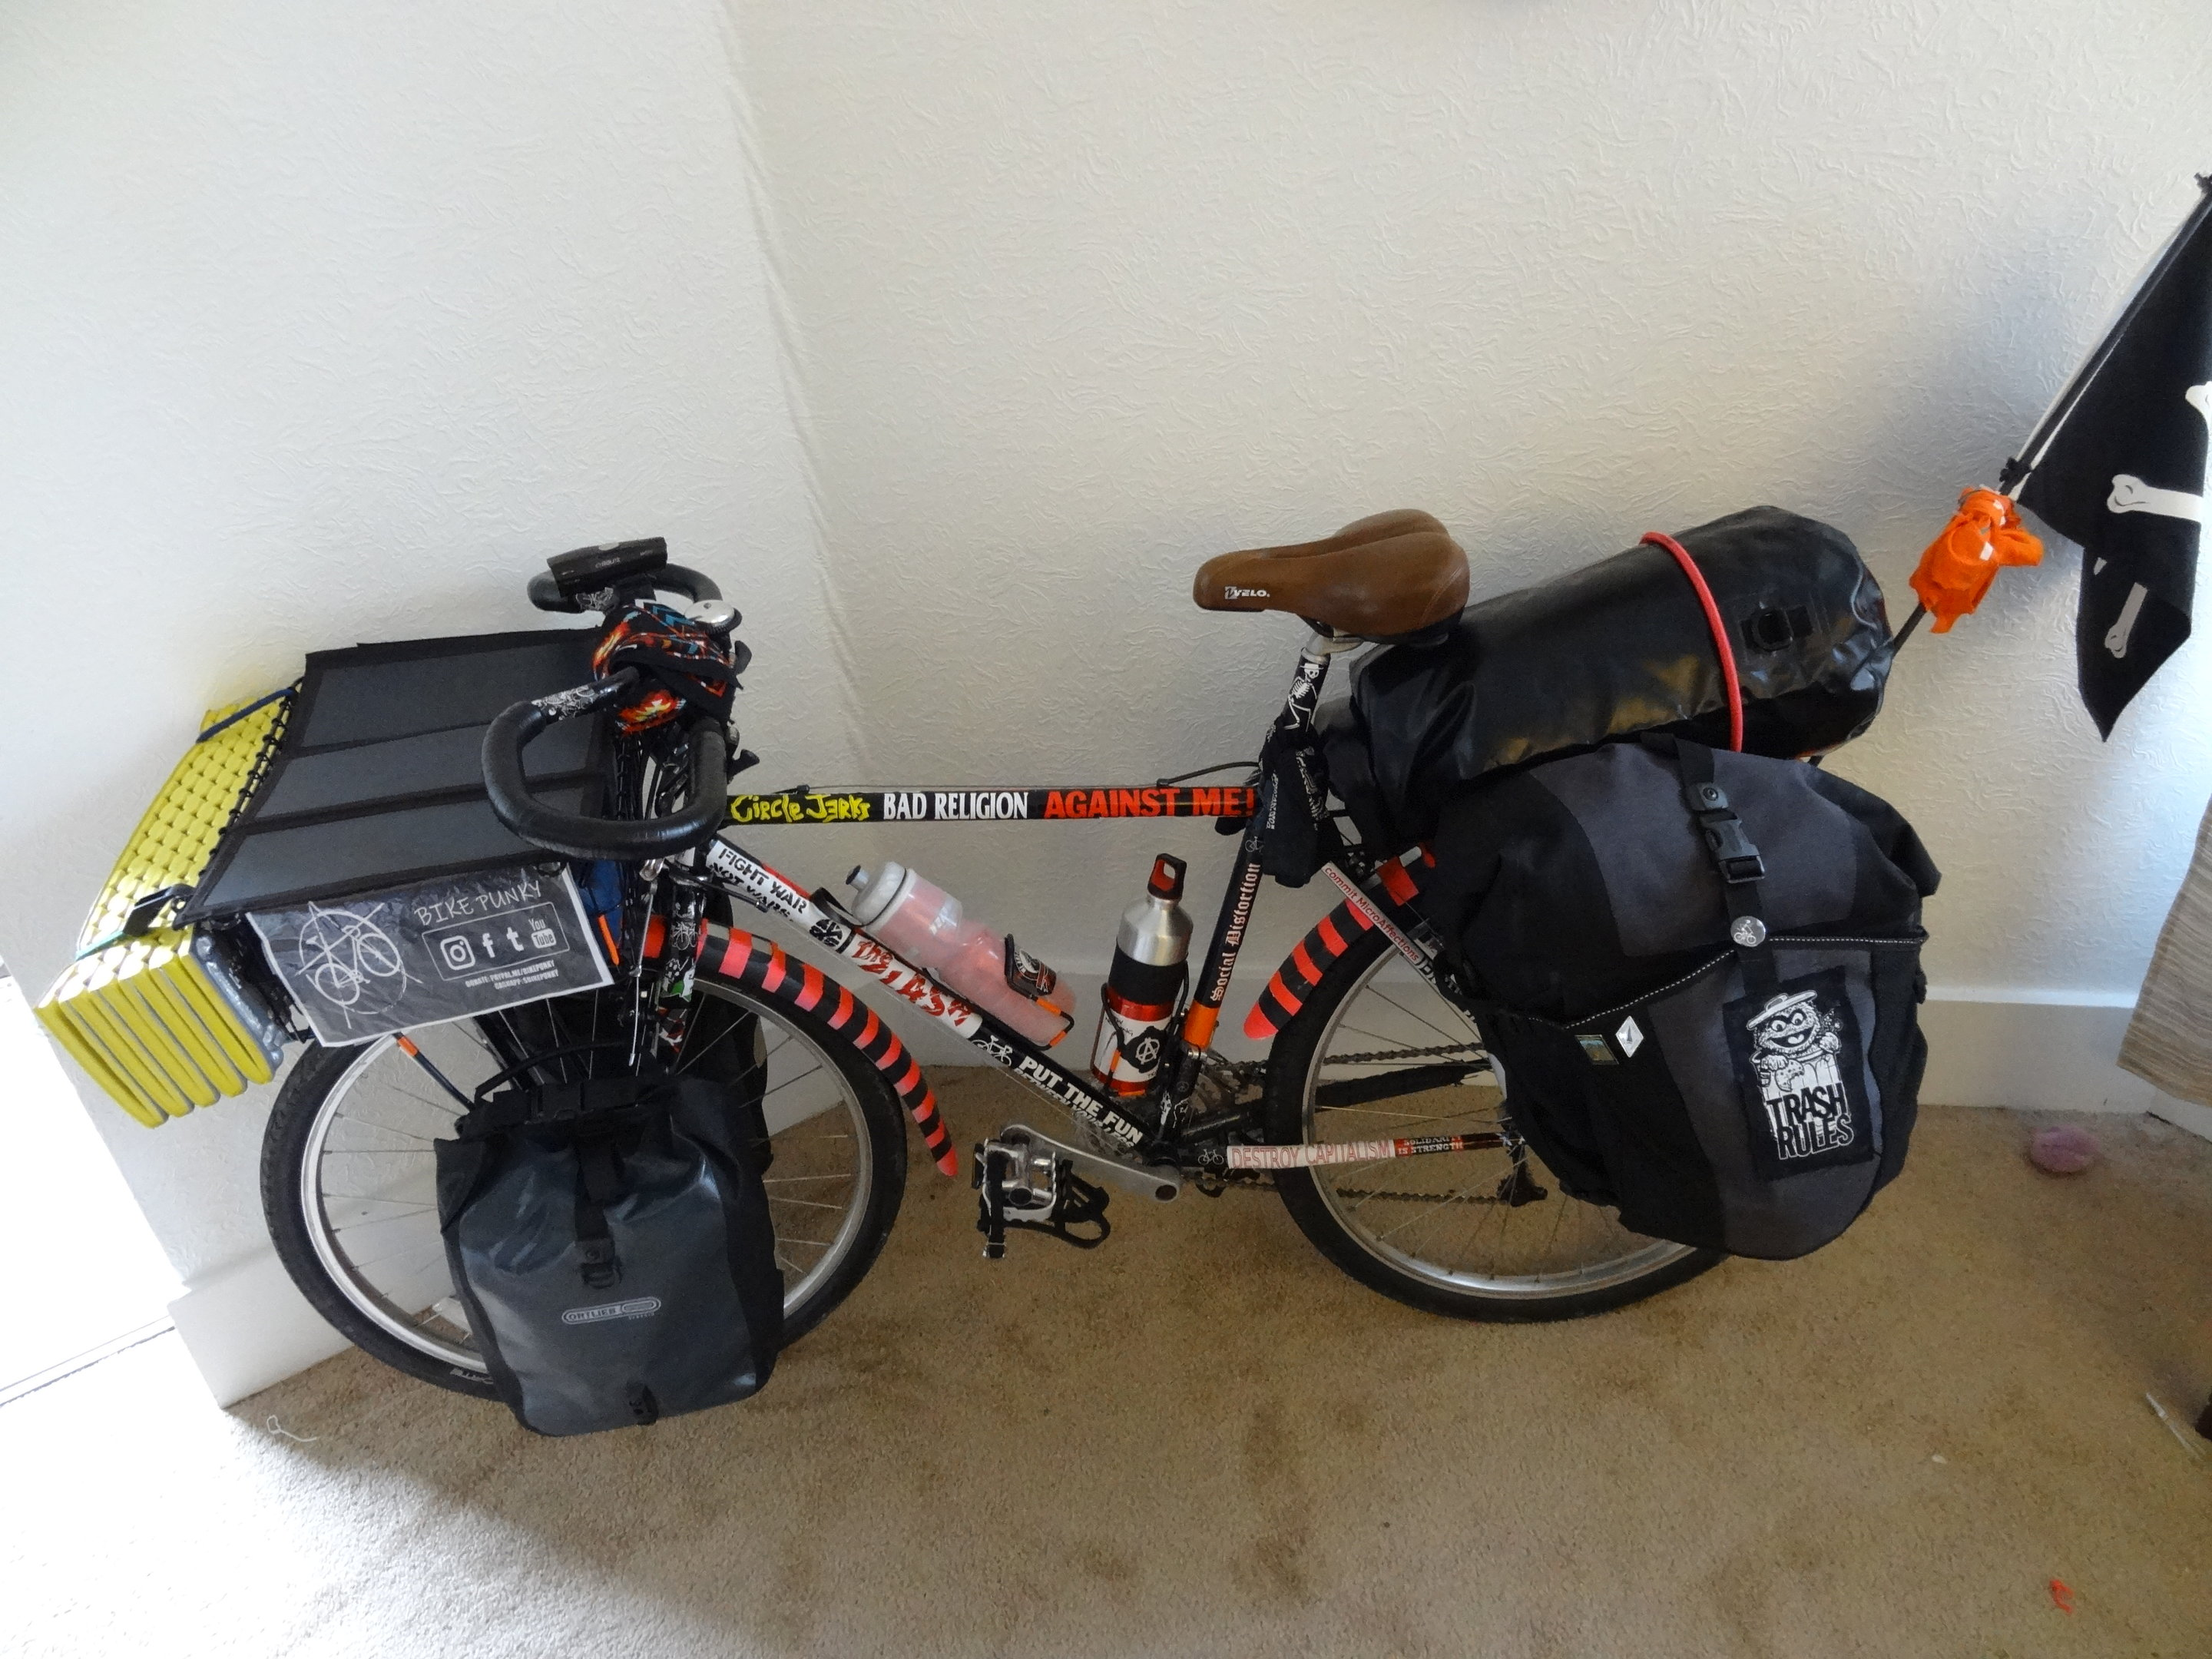 dsc00157-jpg.48444_Picture of your loaded bicycle_Bike Touring_Squat the Planet_4:07 PM